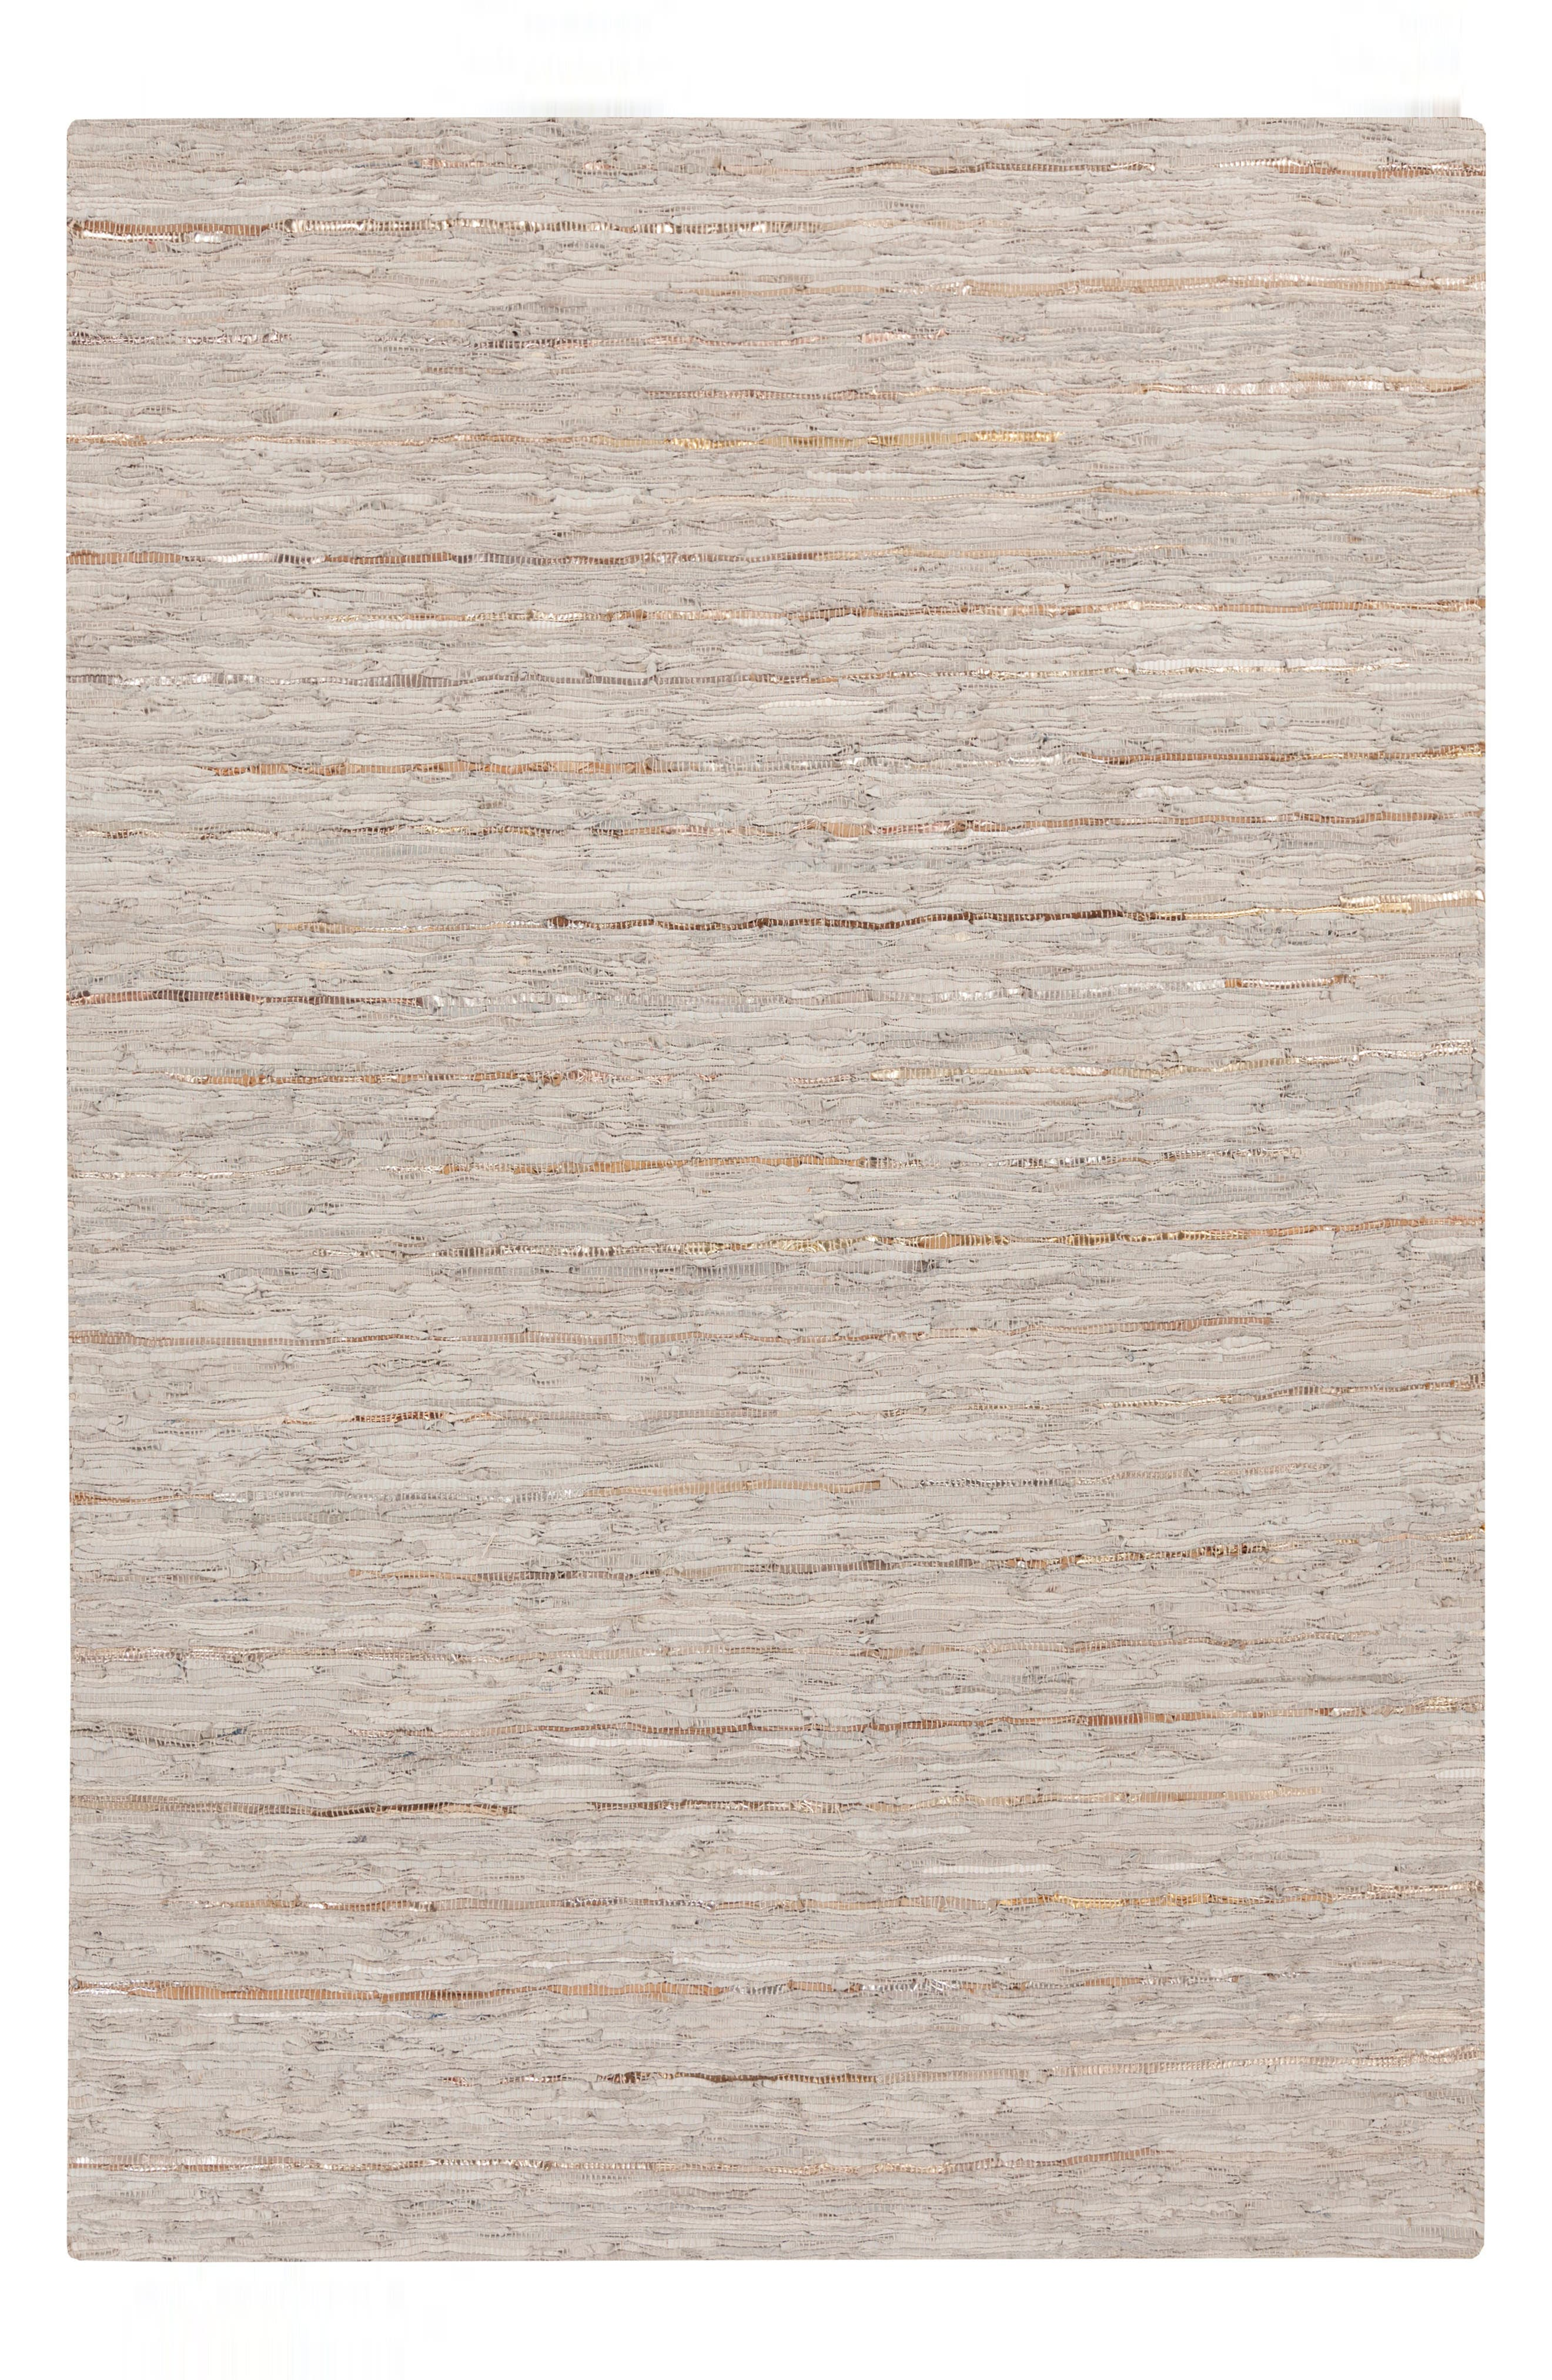 Anthracite Leather Rug,                         Main,                         color, GREY